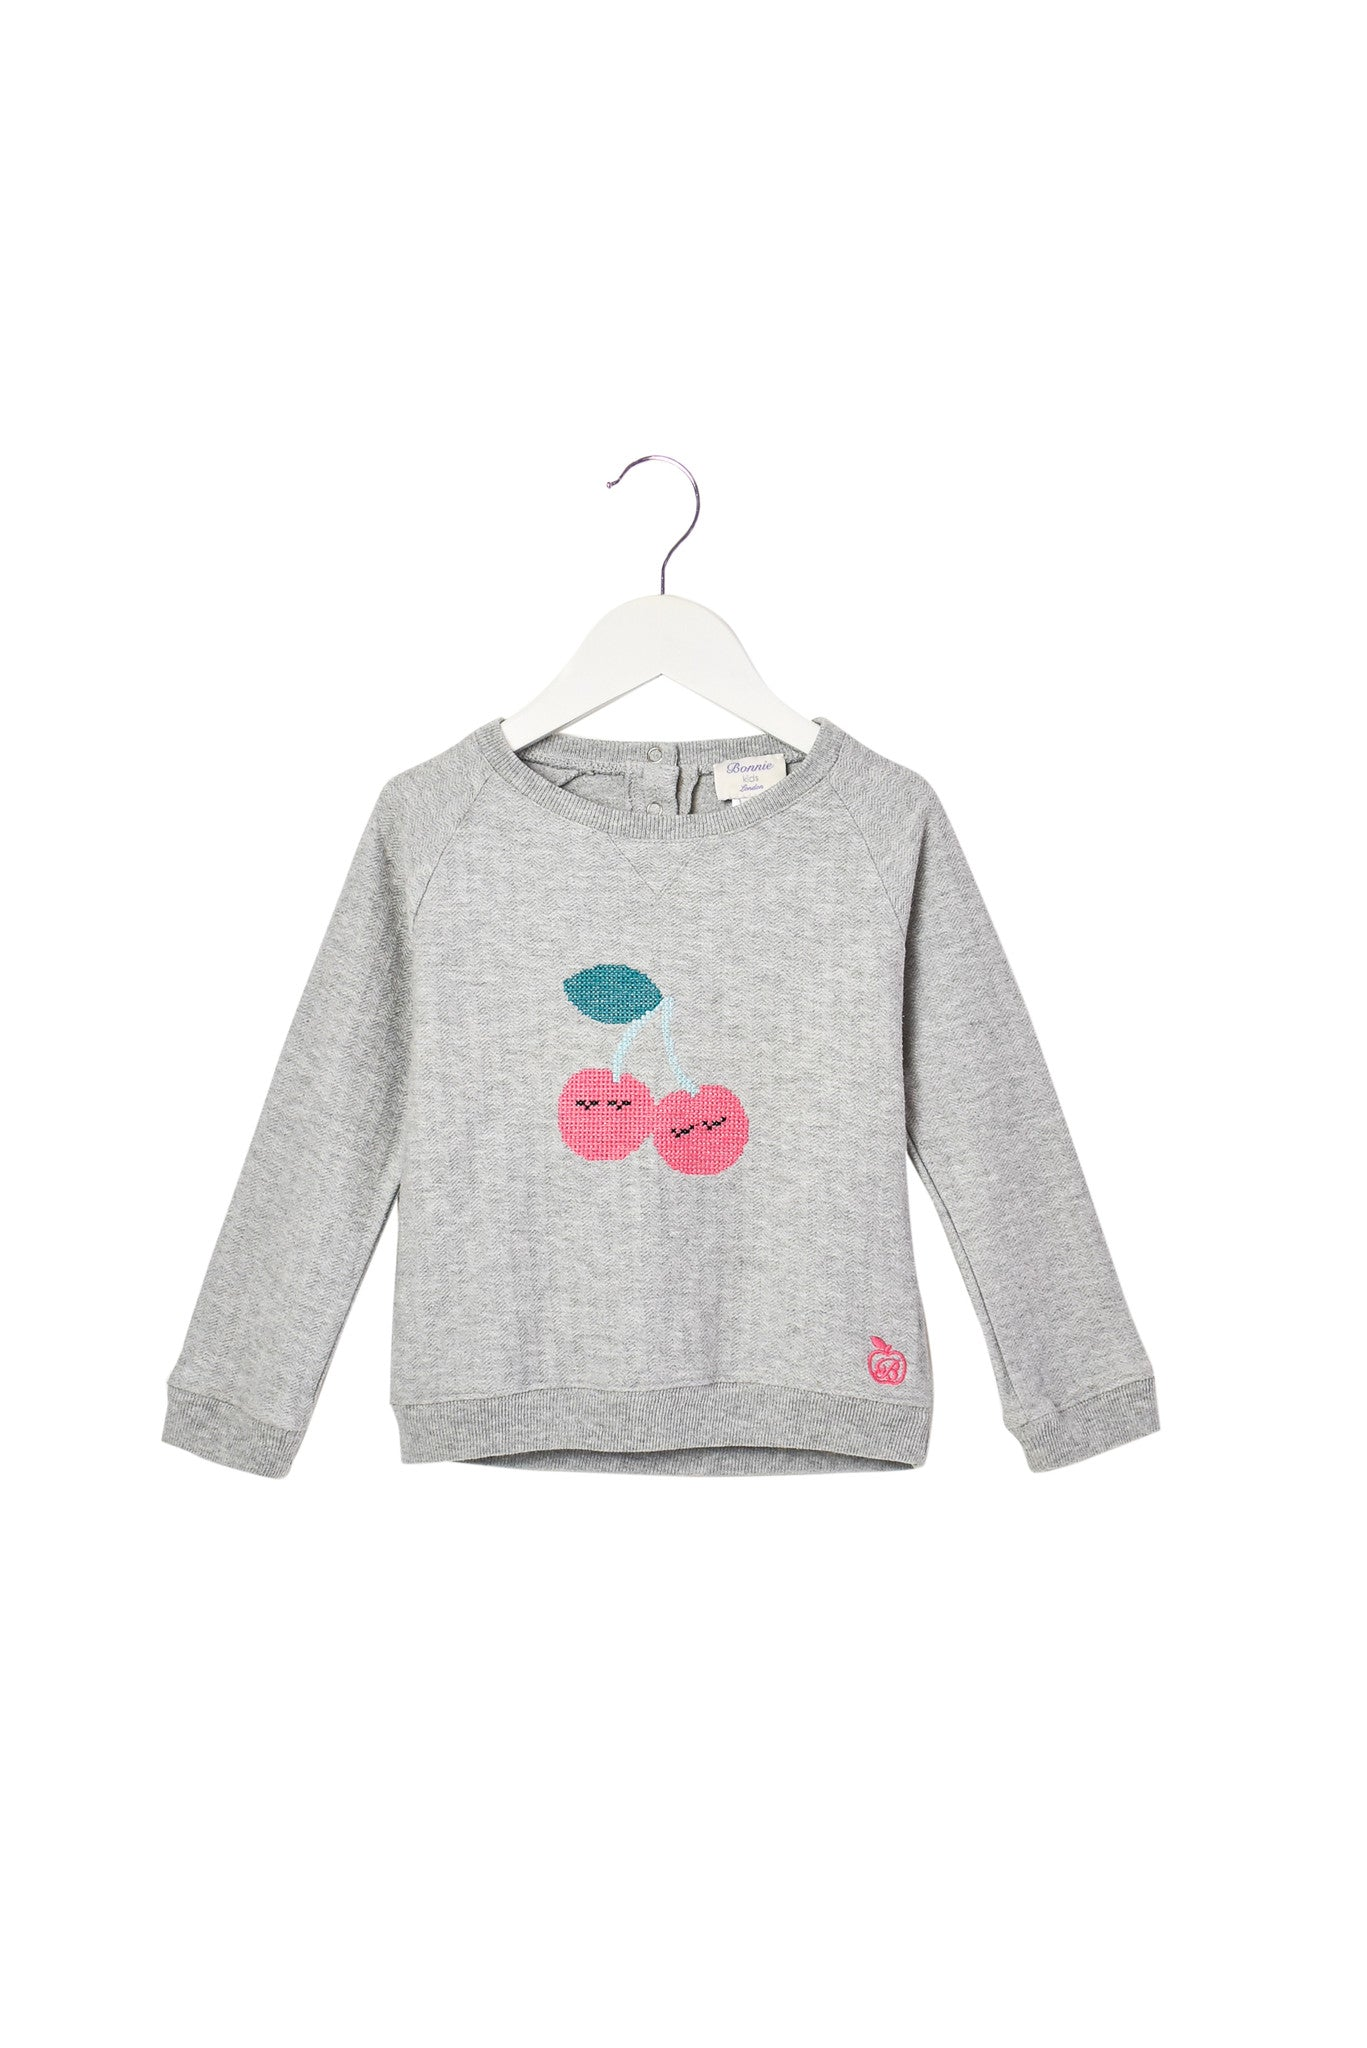 10003508~ Bonnie Kids~Sweater 4-5T at Retykle